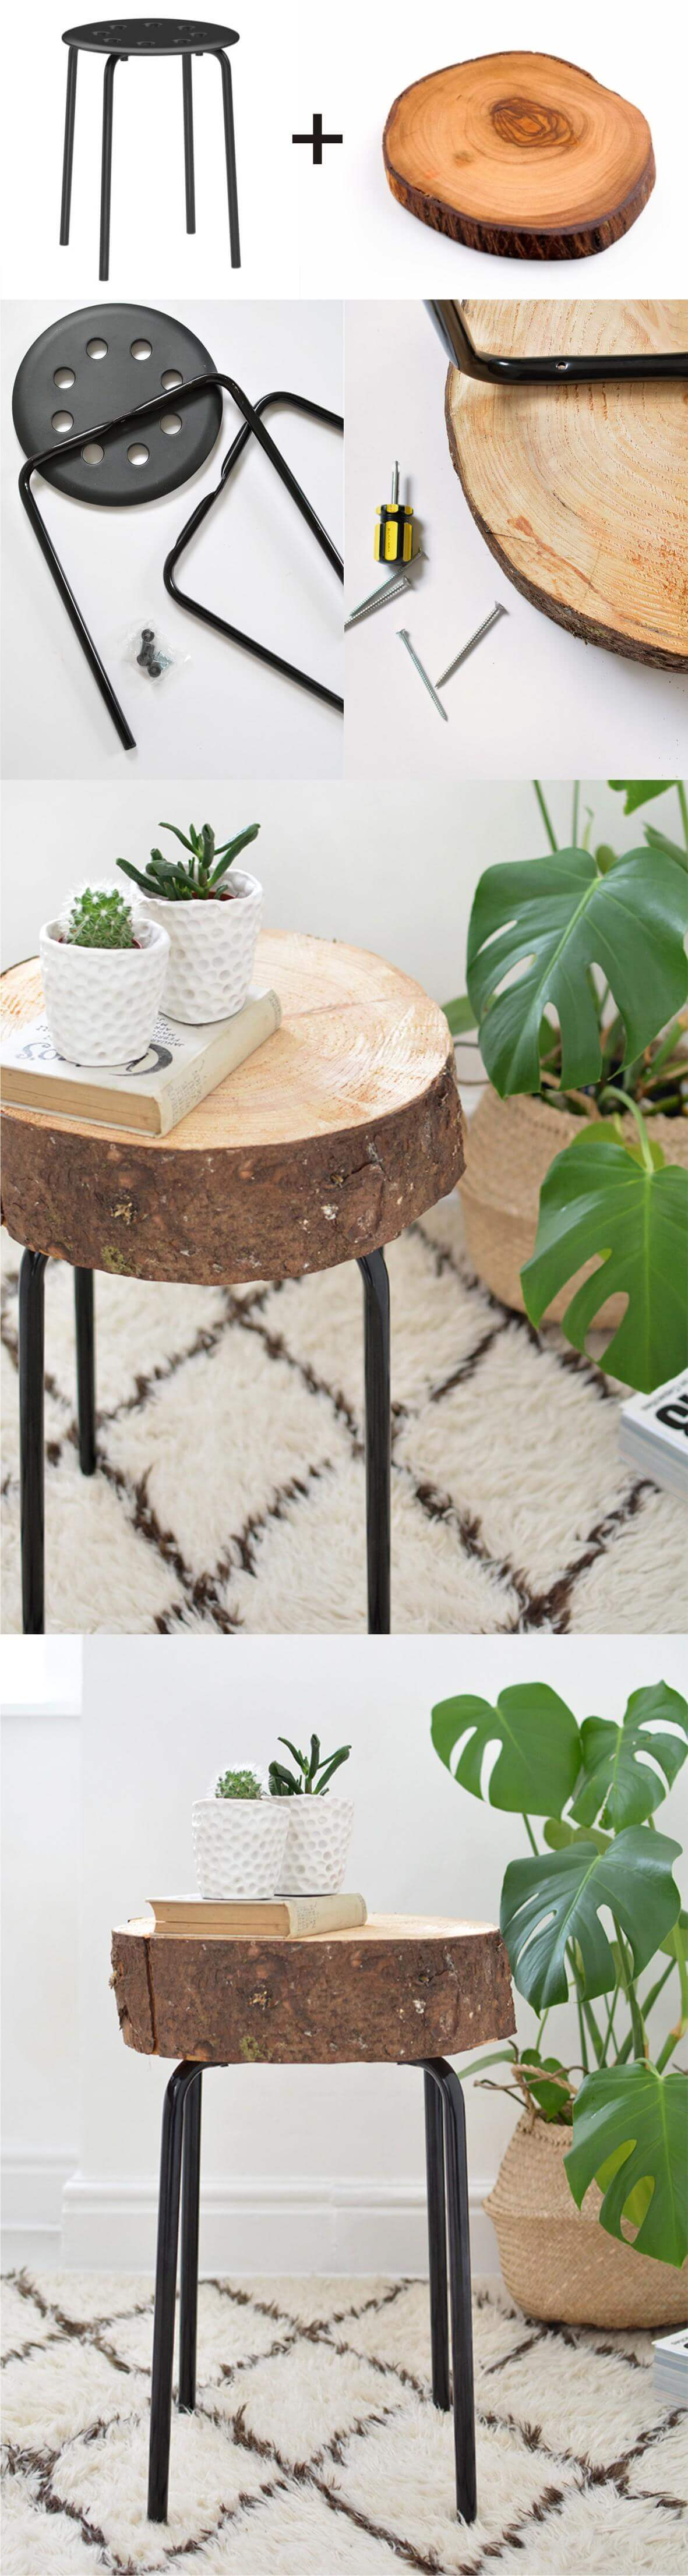 29 Best Nightstand Ideas And Designs For 2019